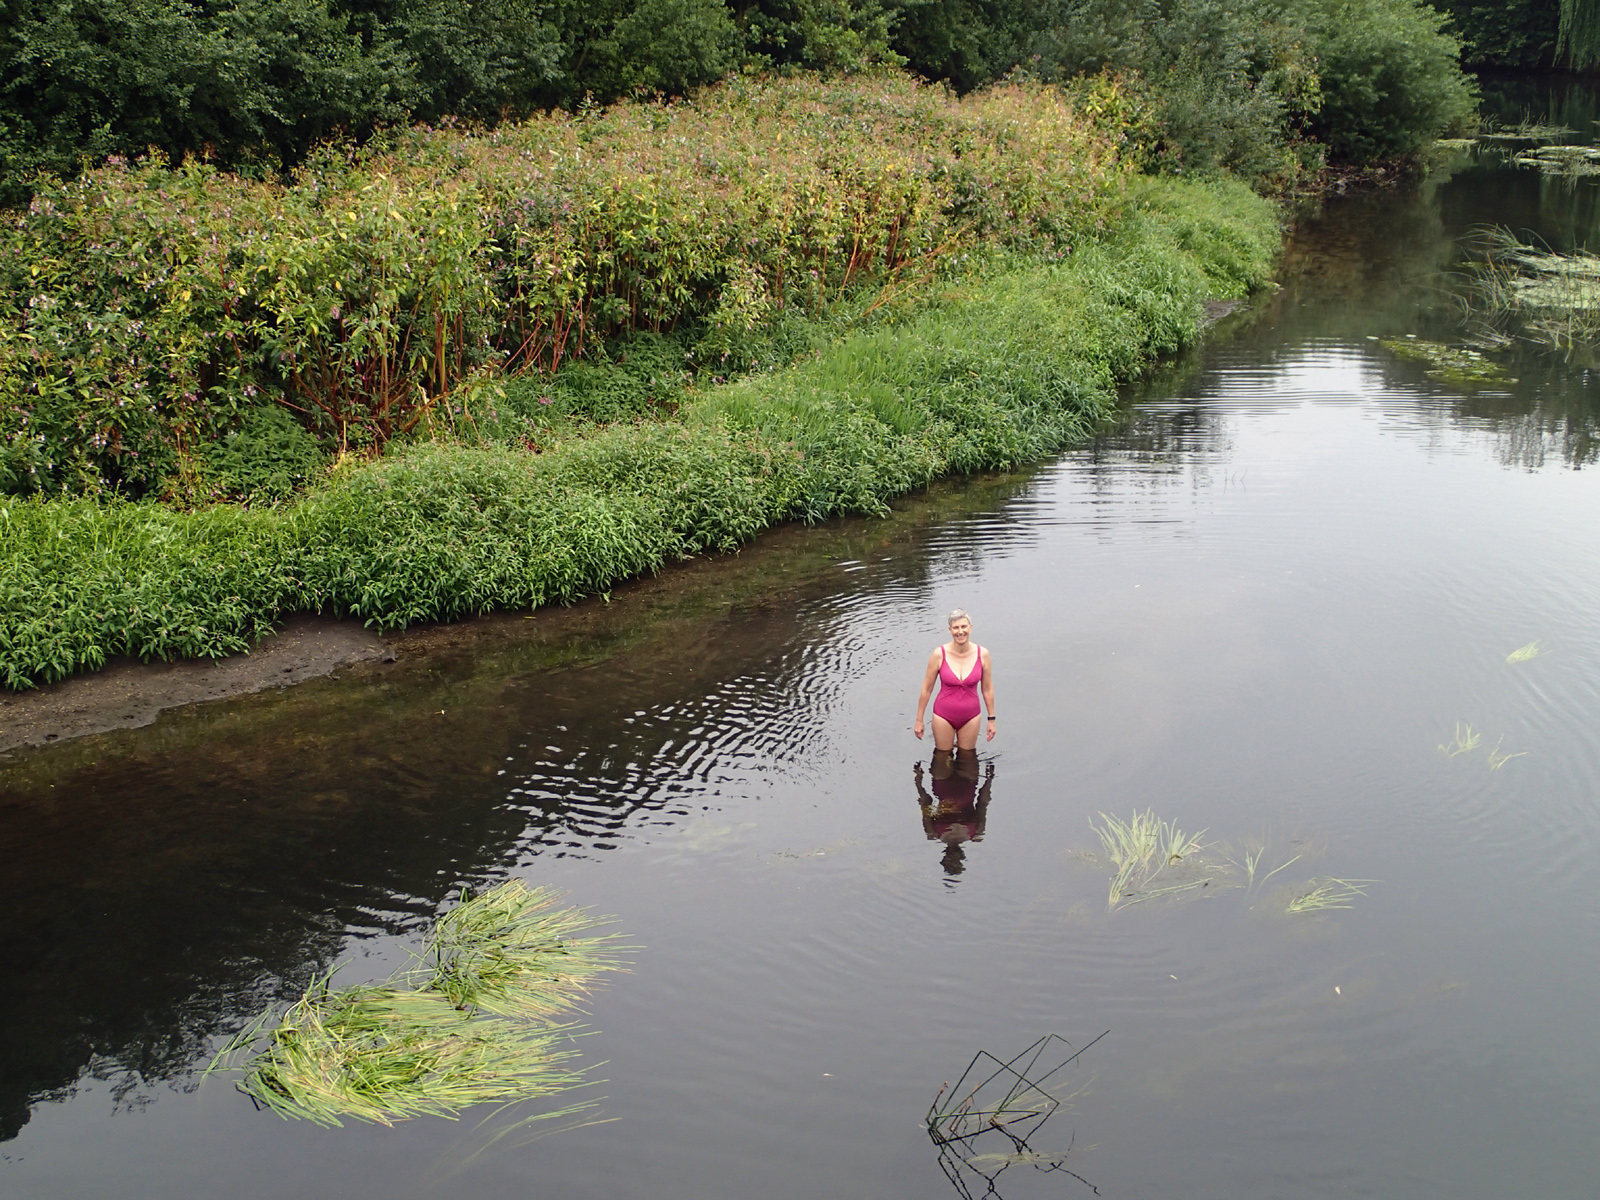 woman standing in river with reflection and bank foliage behind